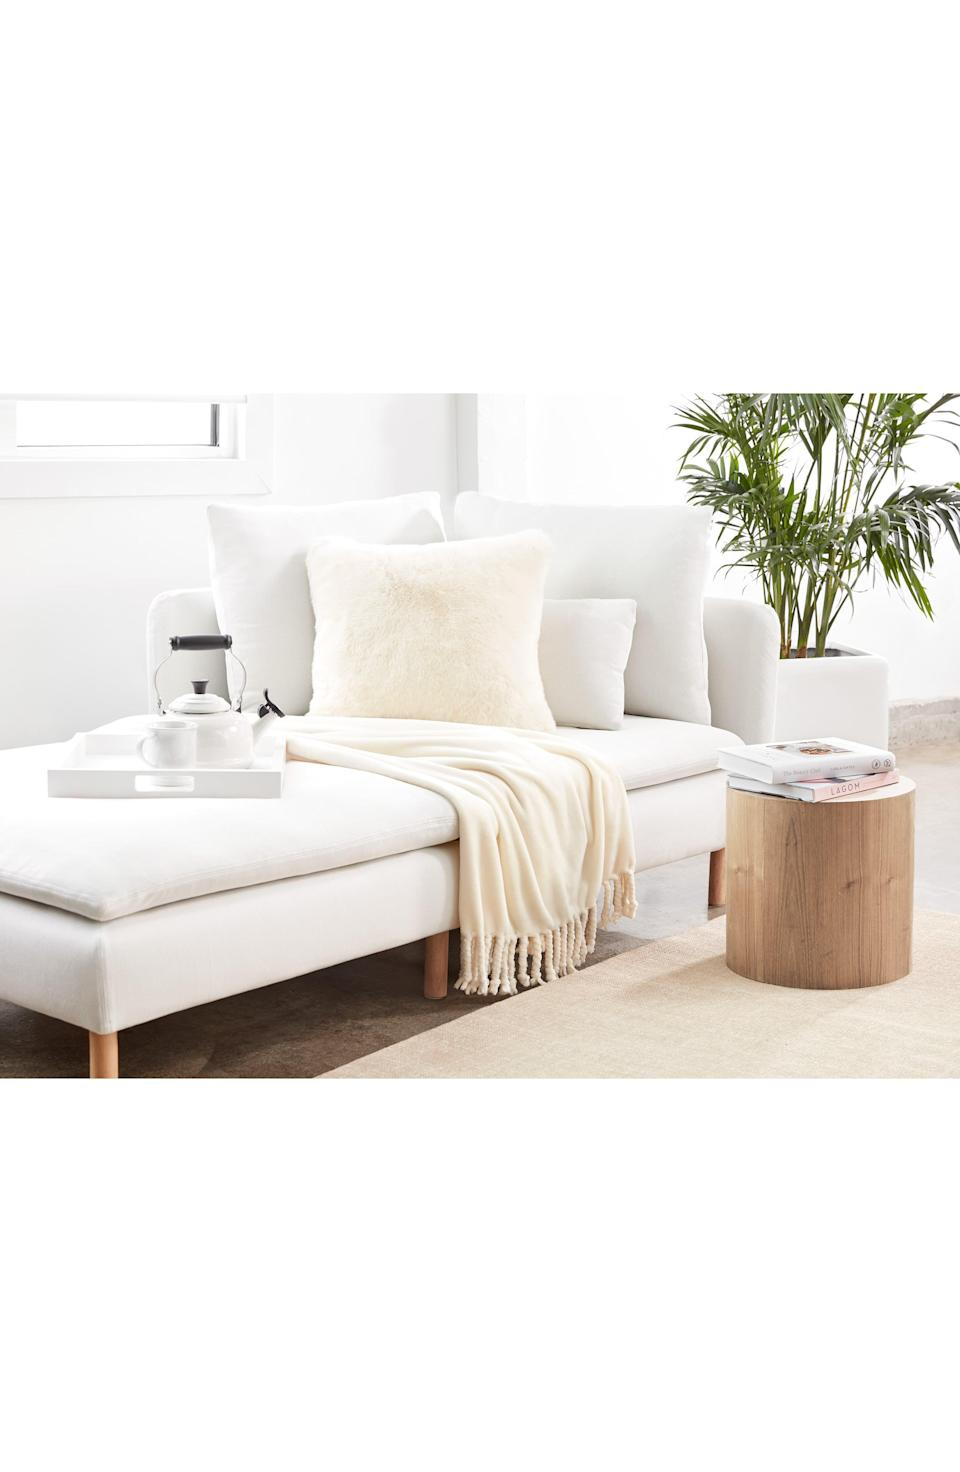 """<p><strong>NORDSTROM AT HOME</strong></p><p>nordstrom.com</p><p><strong>$39.50</strong></p><p><a href=""""https://go.redirectingat.com?id=74968X1596630&url=https%3A%2F%2Fwww.nordstrom.com%2Fs%2Fnordstrom-bliss-plush-throw%2F3564757&sref=https%3A%2F%2Fwww.womansday.com%2Frelationships%2Fg3242%2Fgifts-for-couples%2F"""" rel=""""nofollow noopener"""" target=""""_blank"""" data-ylk=""""slk:Shop Now"""" class=""""link rapid-noclick-resp"""">Shop Now</a></p><p>You can never have too many fluffy blankets for cuddling on the couch. This one is affordable and highly rated, with customers thrilled at how the softness lasts through multiple washes.</p>"""